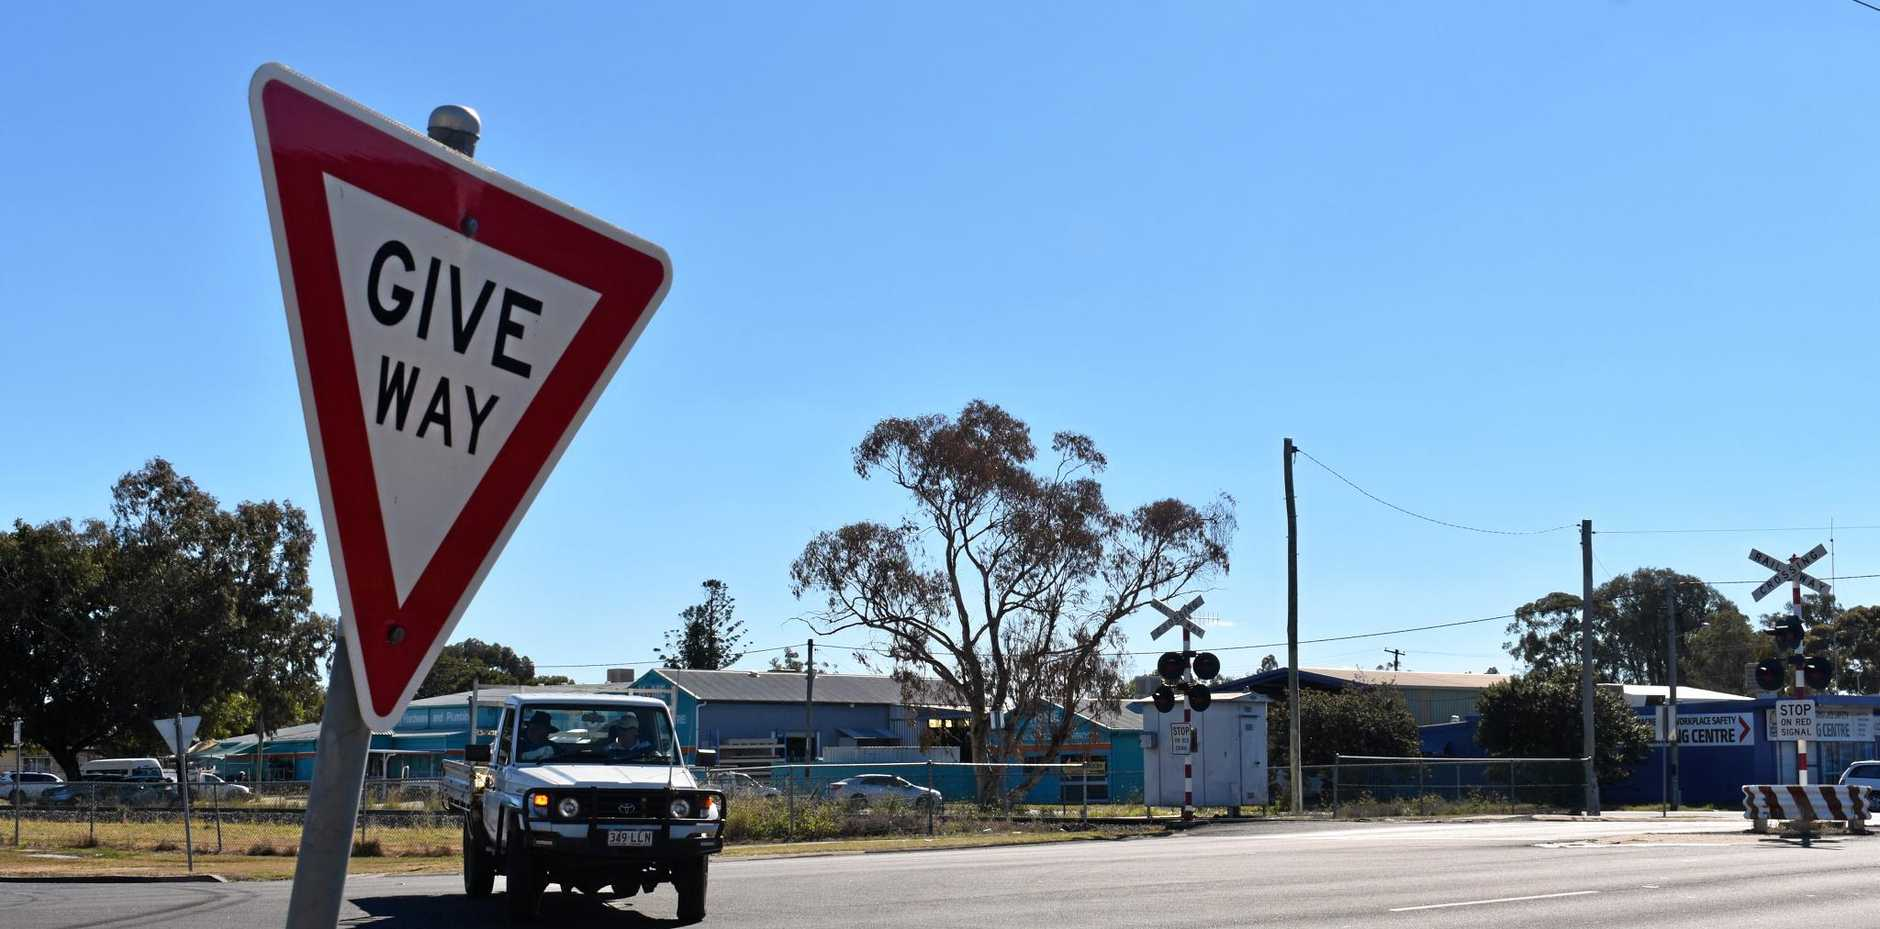 ACCIDENT WAITING TO HAPPEN: Residents have expressed concern over the intersection of Condamine and Roche Sts in Dalby.